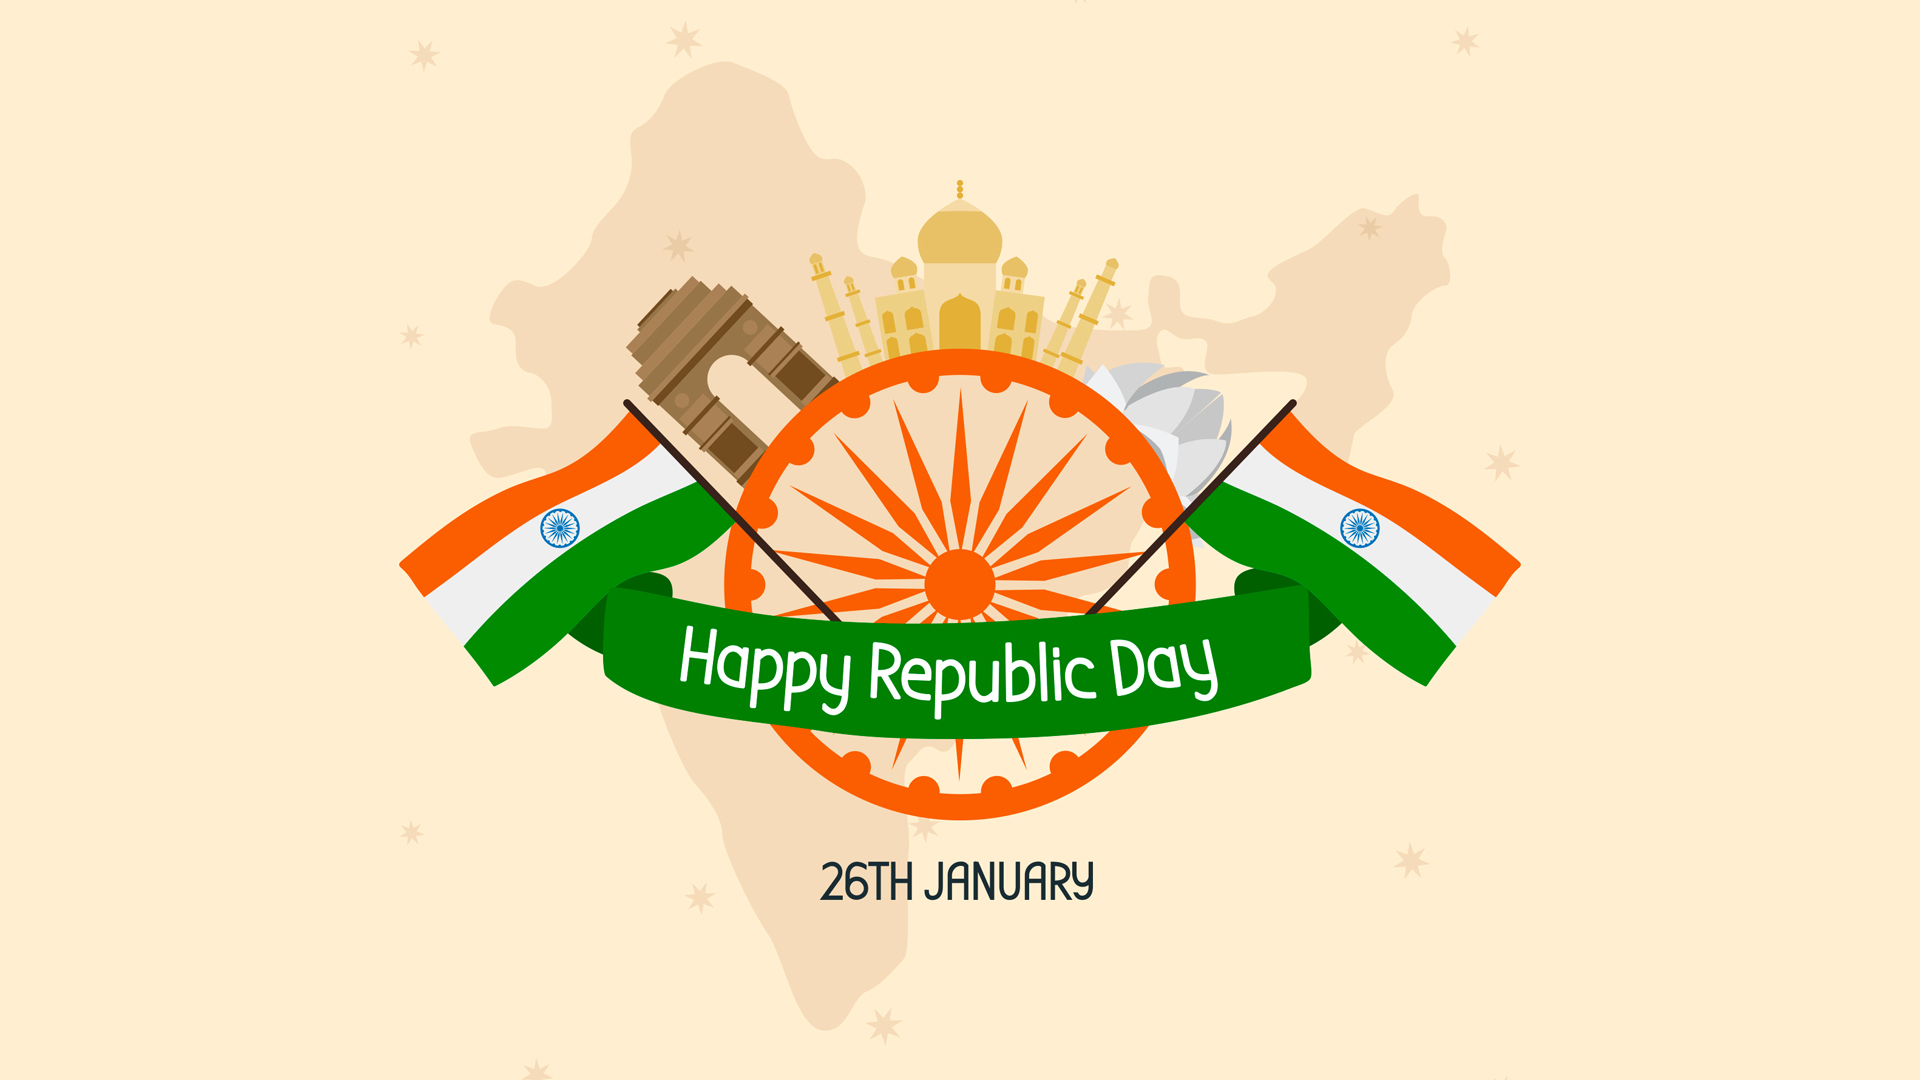 Republic Day 2020 Hd Images For Facebook